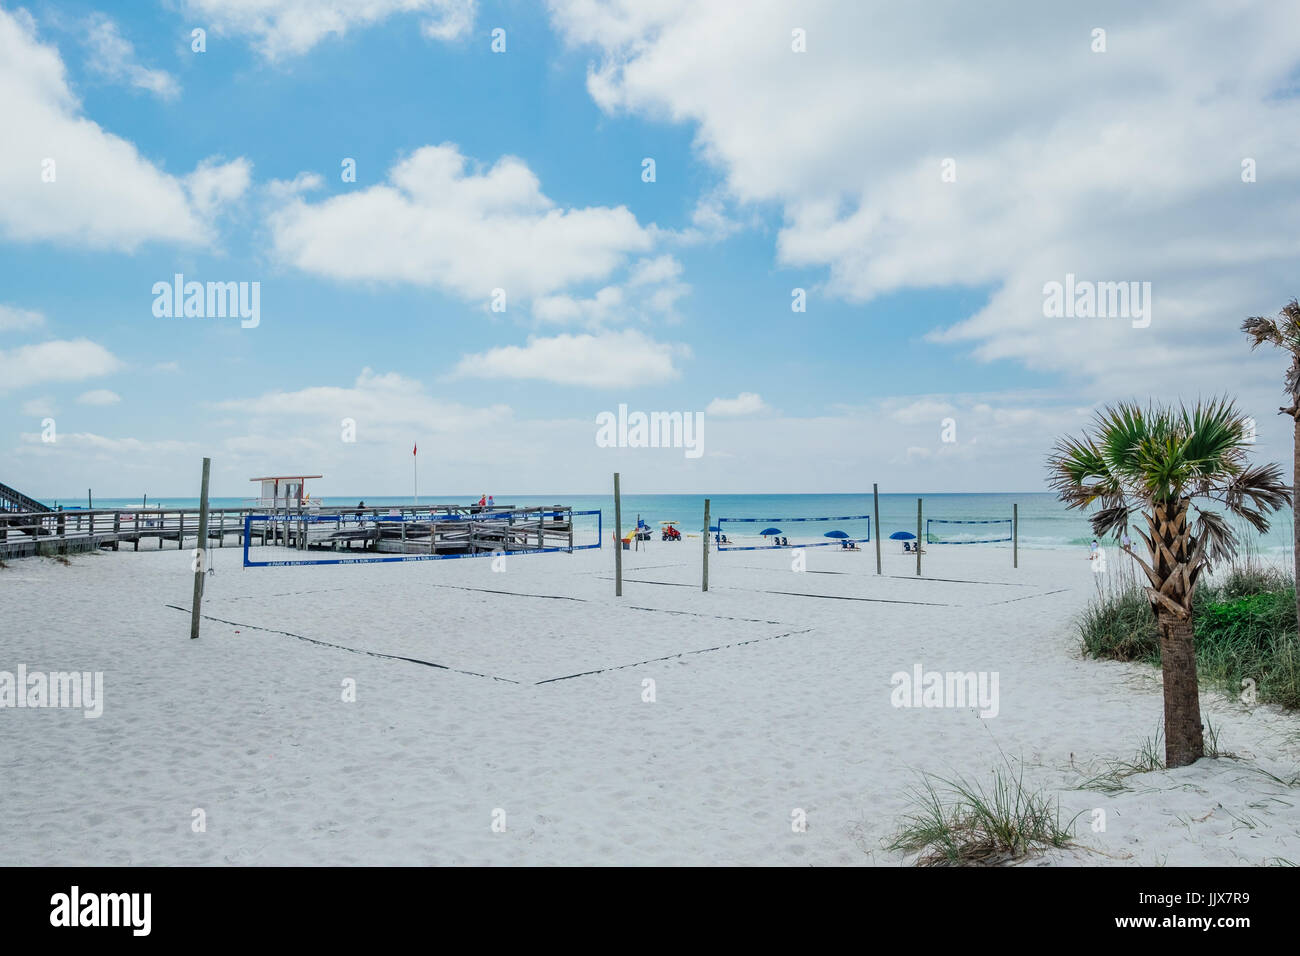 empty-beach-volleyball-courts-at-a-beach-recreation-site-on-okaloosa-JJX7R9.jpg